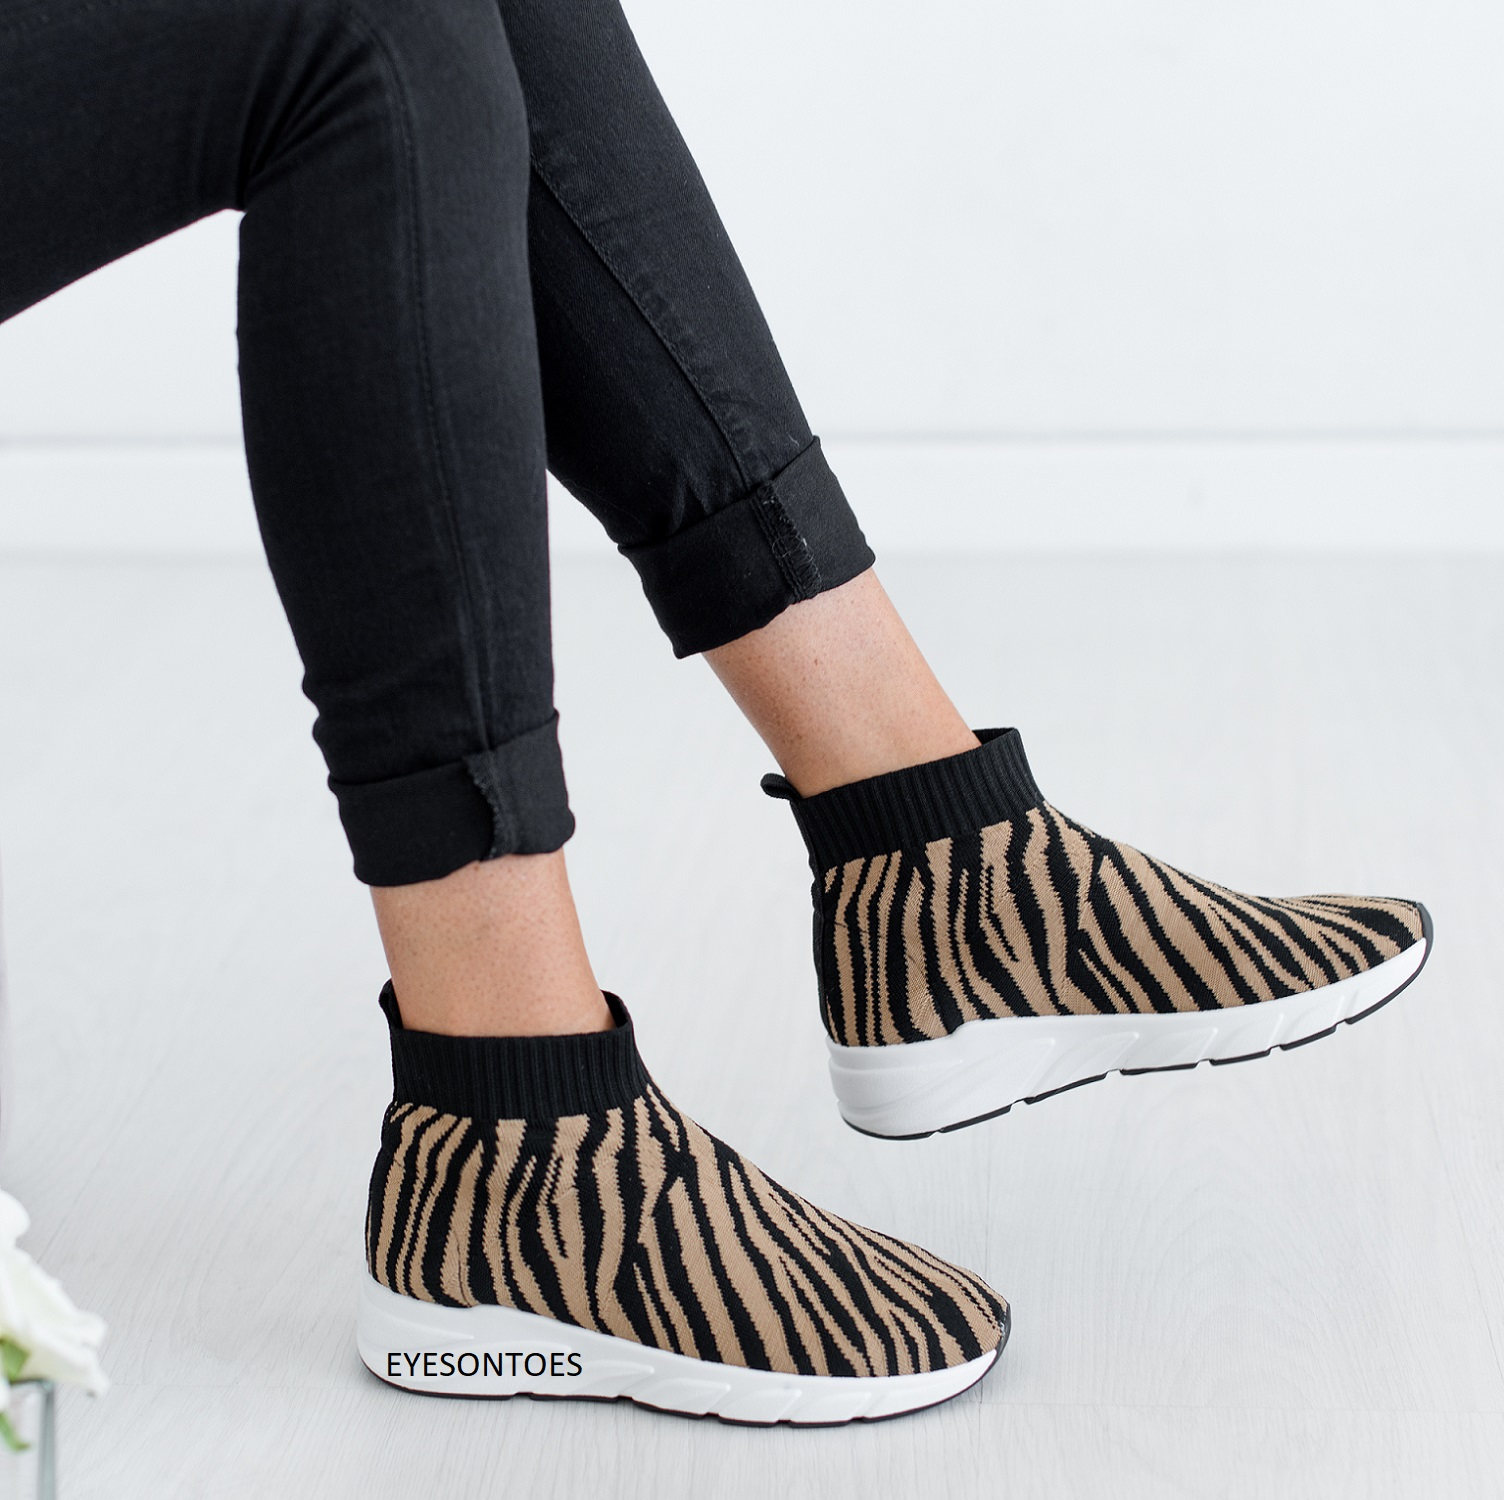 SOCK SLIP ON FLAT ANKLE WOMENS LADIES GYM KNIT RUNNING SNEAKERS TRAINERS SHOES S